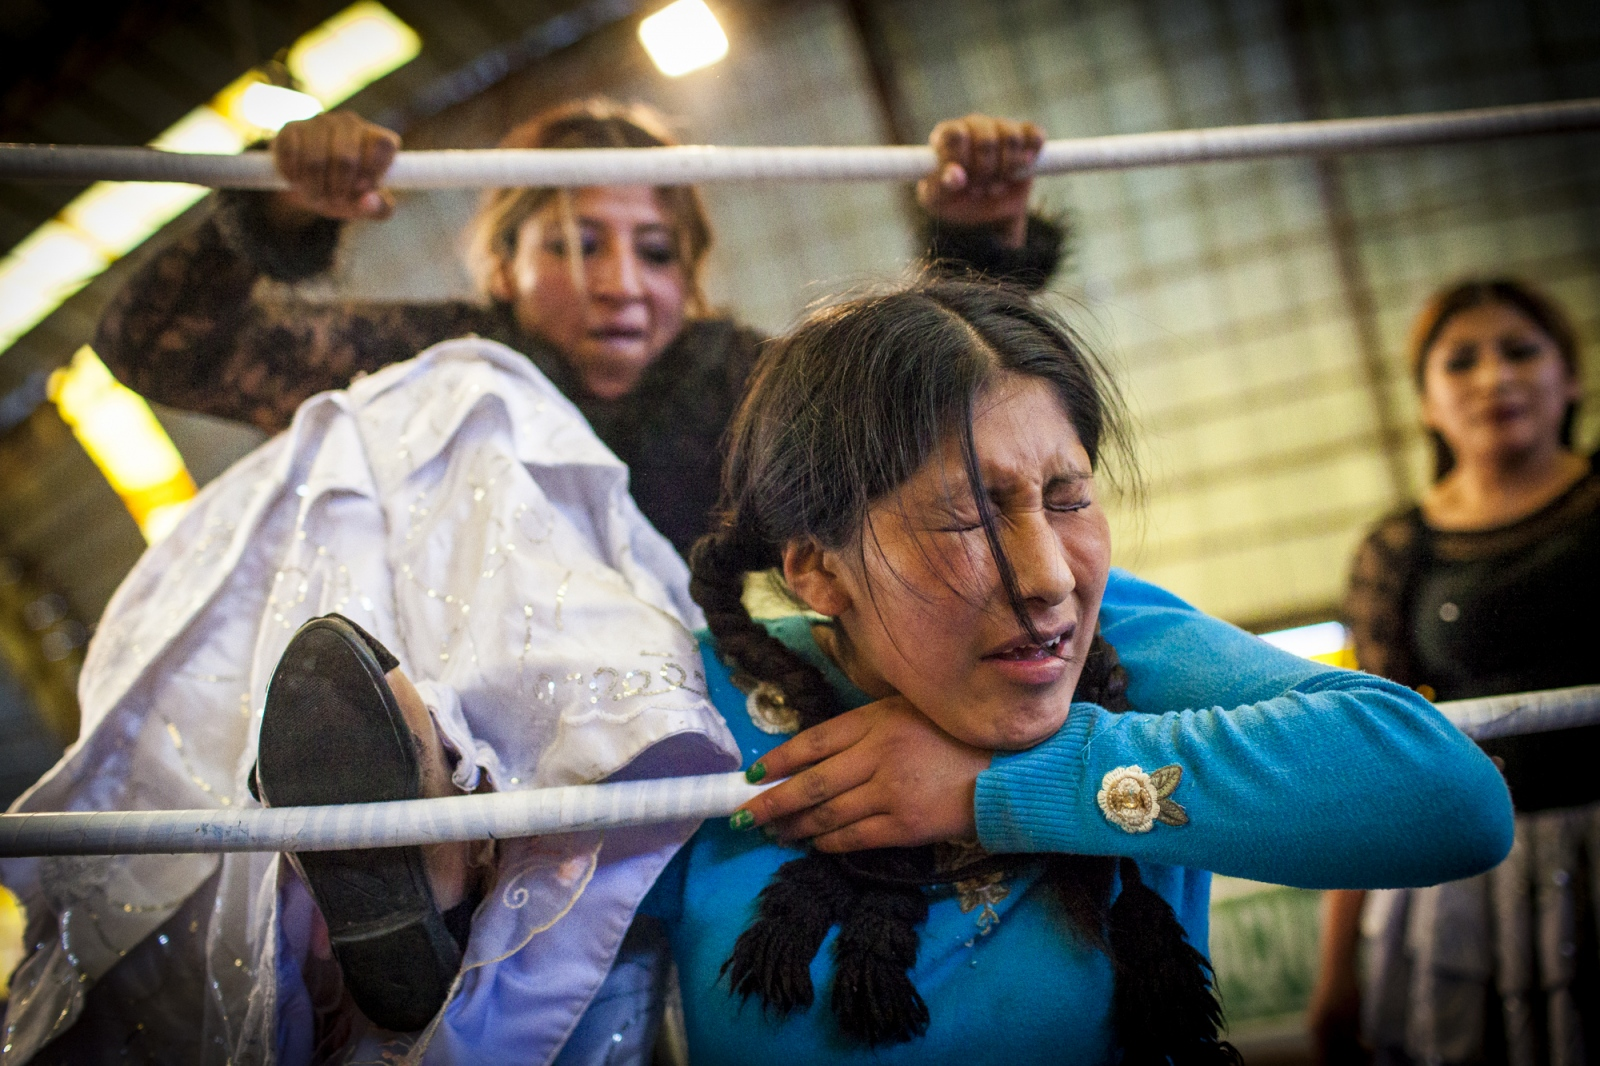 Juanita La Cariñosa punishes Jennifer Dos Caras (Two Faces), 16, on the ropes during a fight on the 12th October Sports Complex in El Alto. Sometimes fights are fought in pairs, being one team the bad  and the other the good one. As in many other stories, most of the times the good one tends to win the fight at the end after suffering a lot.